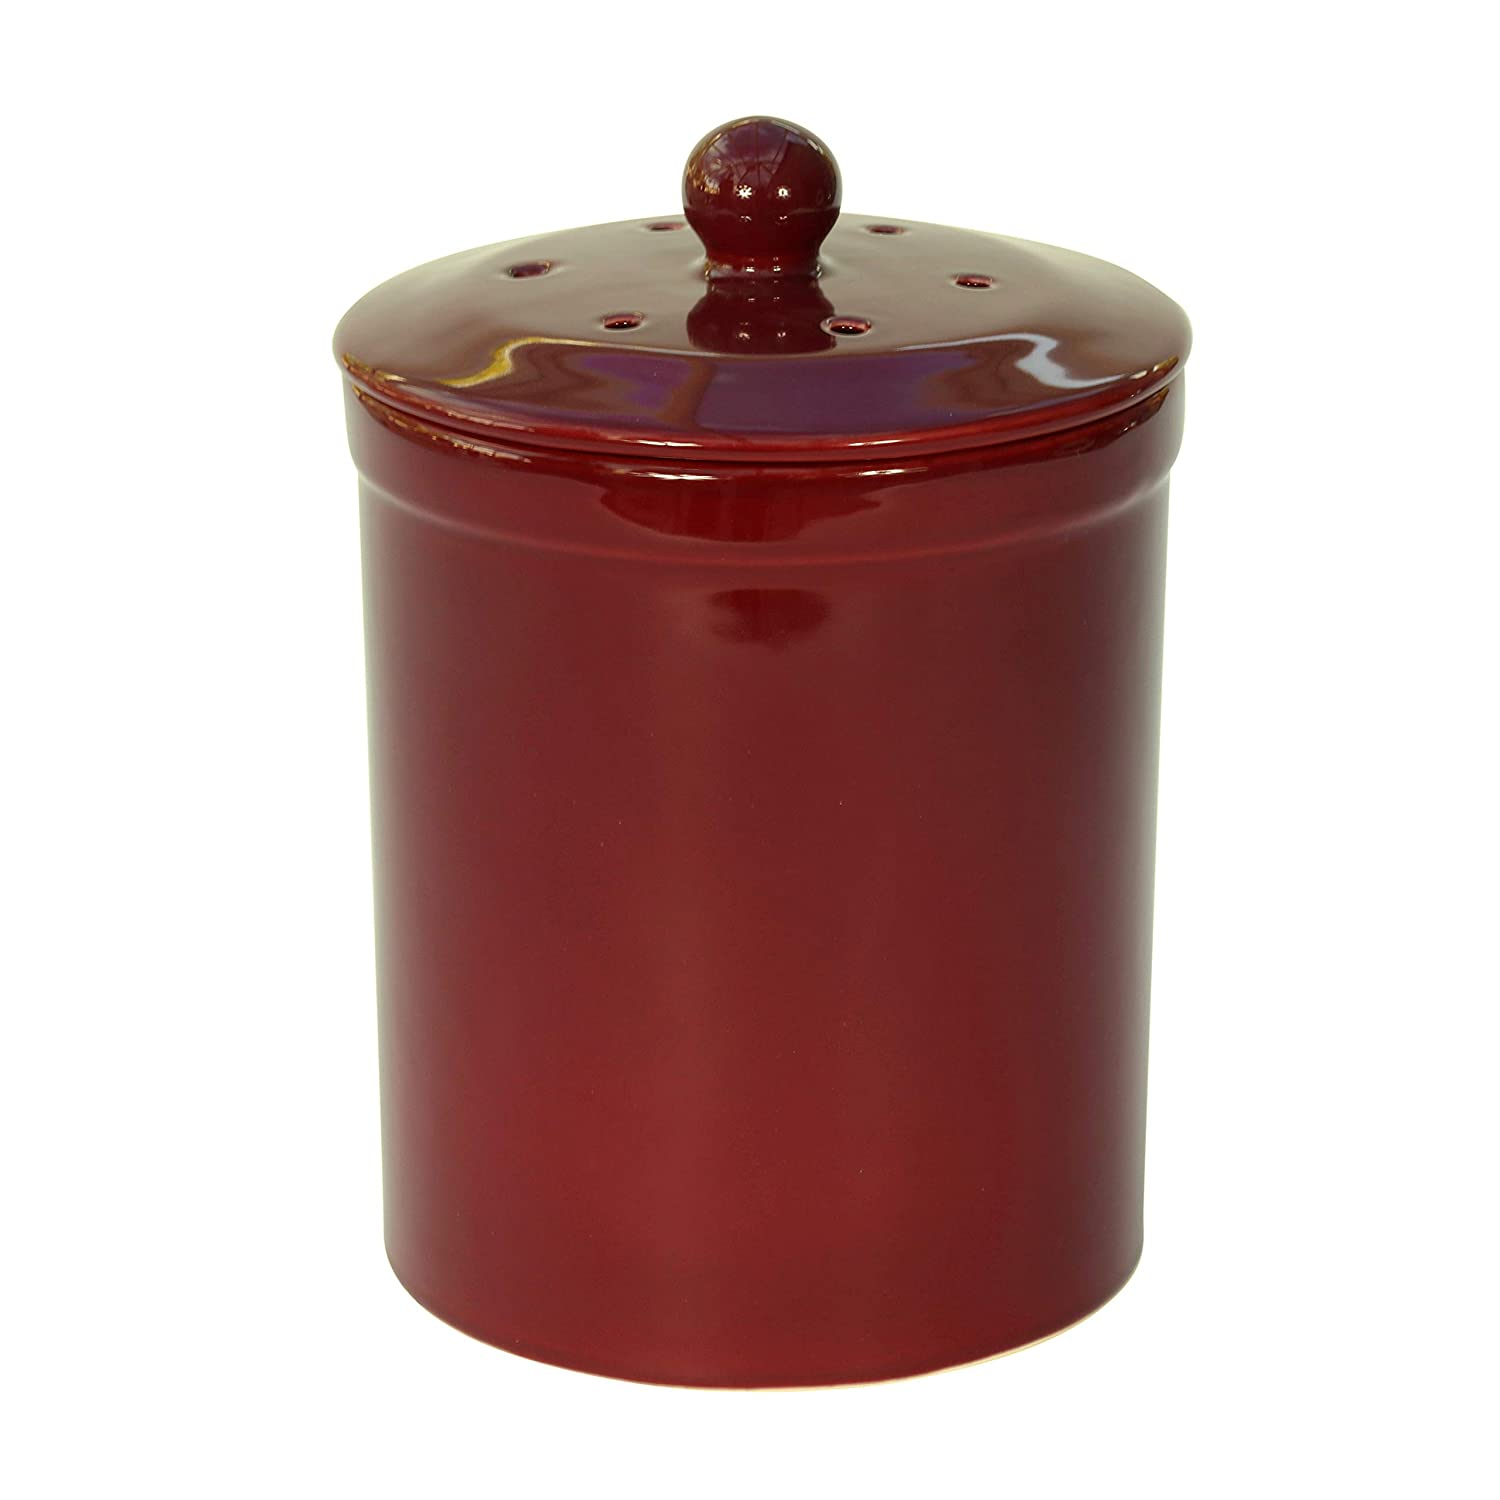 Burgundy Ceramic Compost Caddy - Melbury Kitchen Ceramic Compost Bin for Food Waste Recycling The Caddy Company